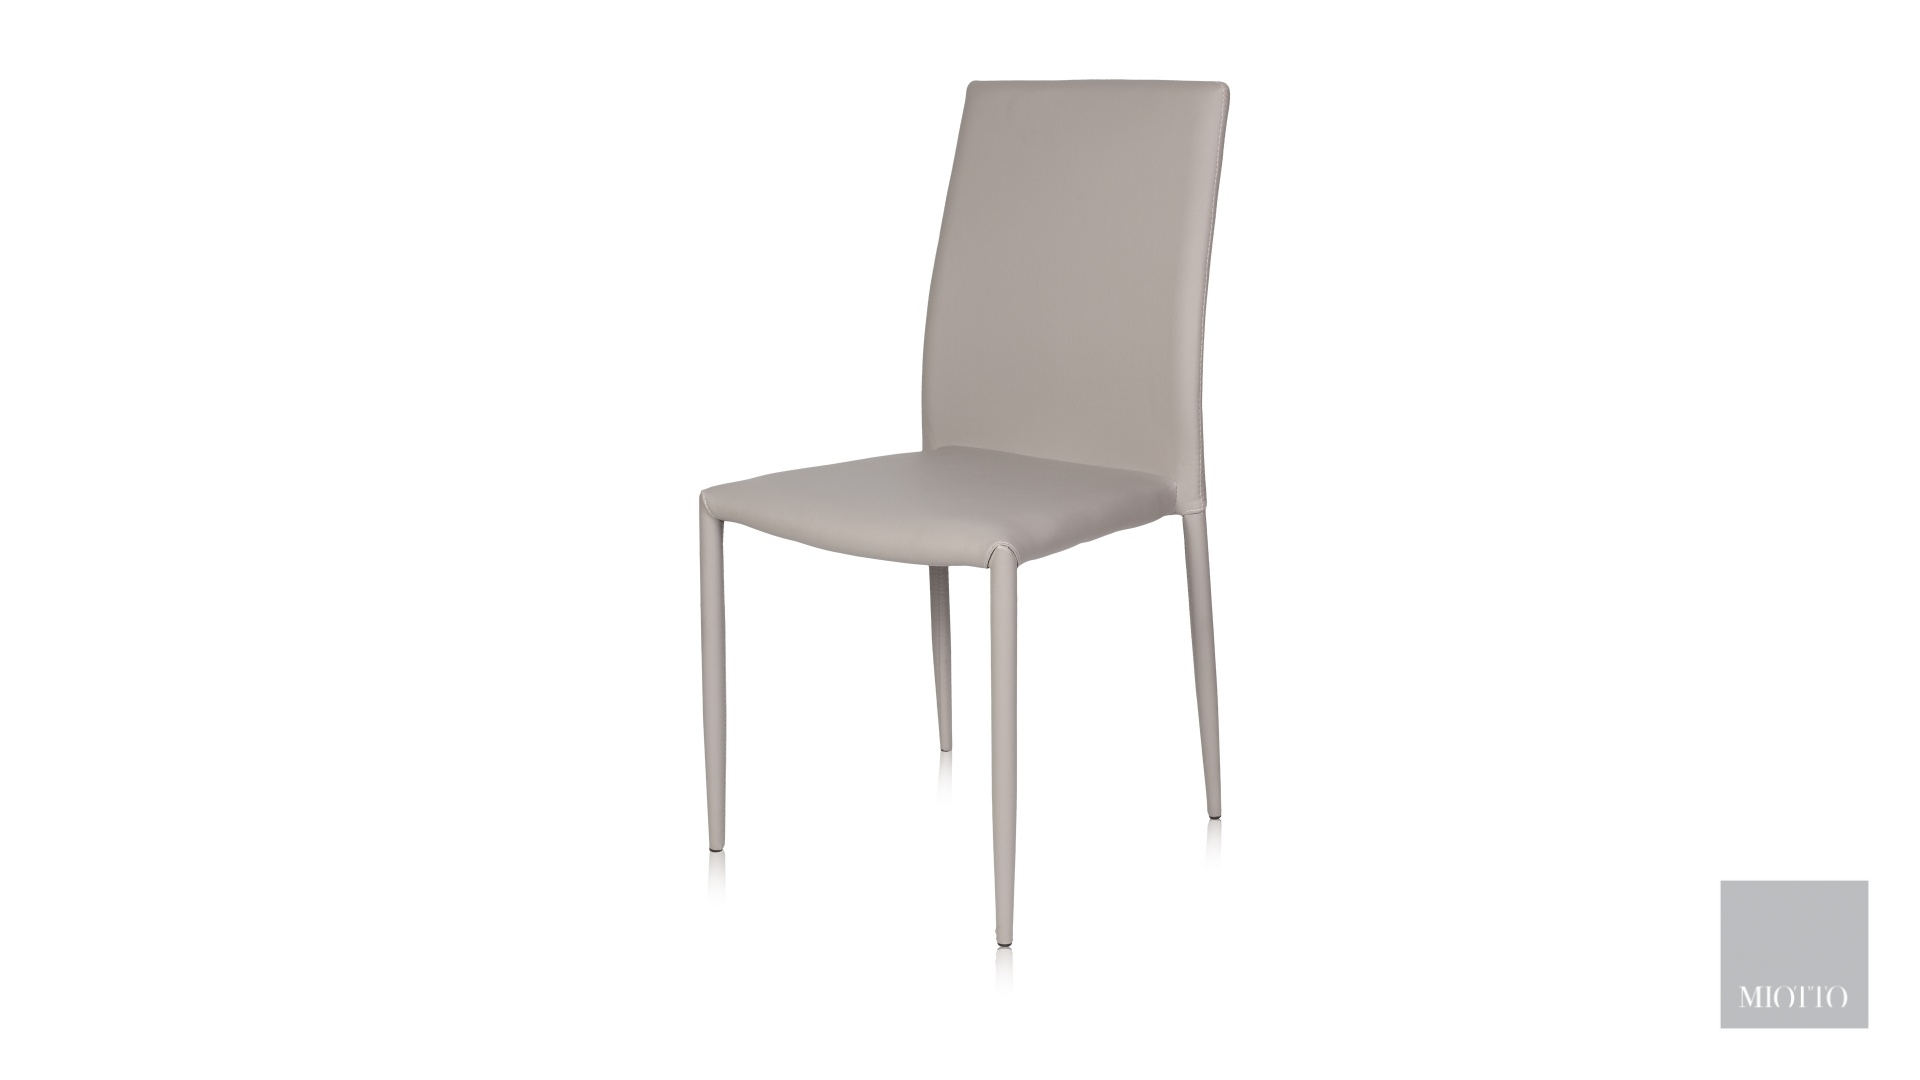 miotto_Lara dining chair pu light grey front miotto furniture